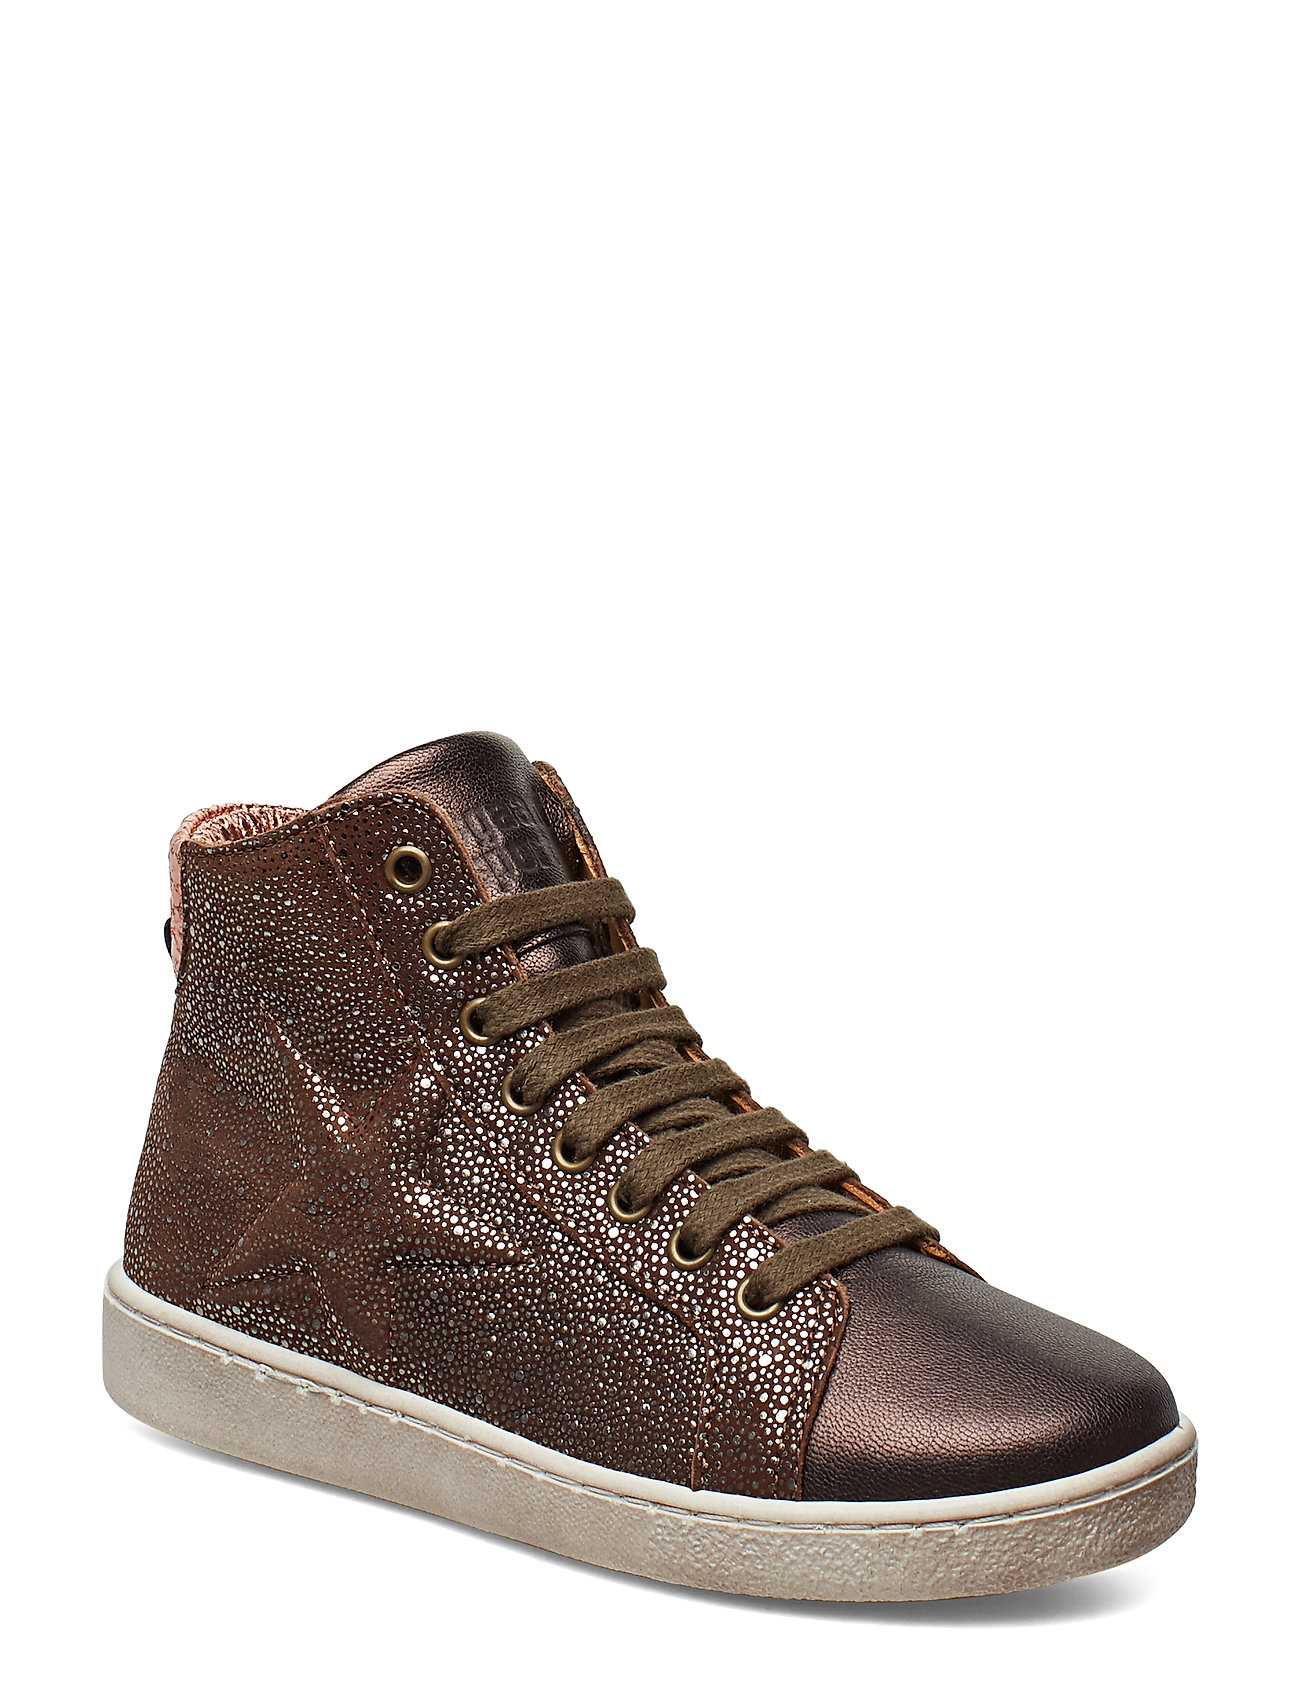 Image of Shoe With Laces Sneakers Sko Brun Bisgaard (3406214993)